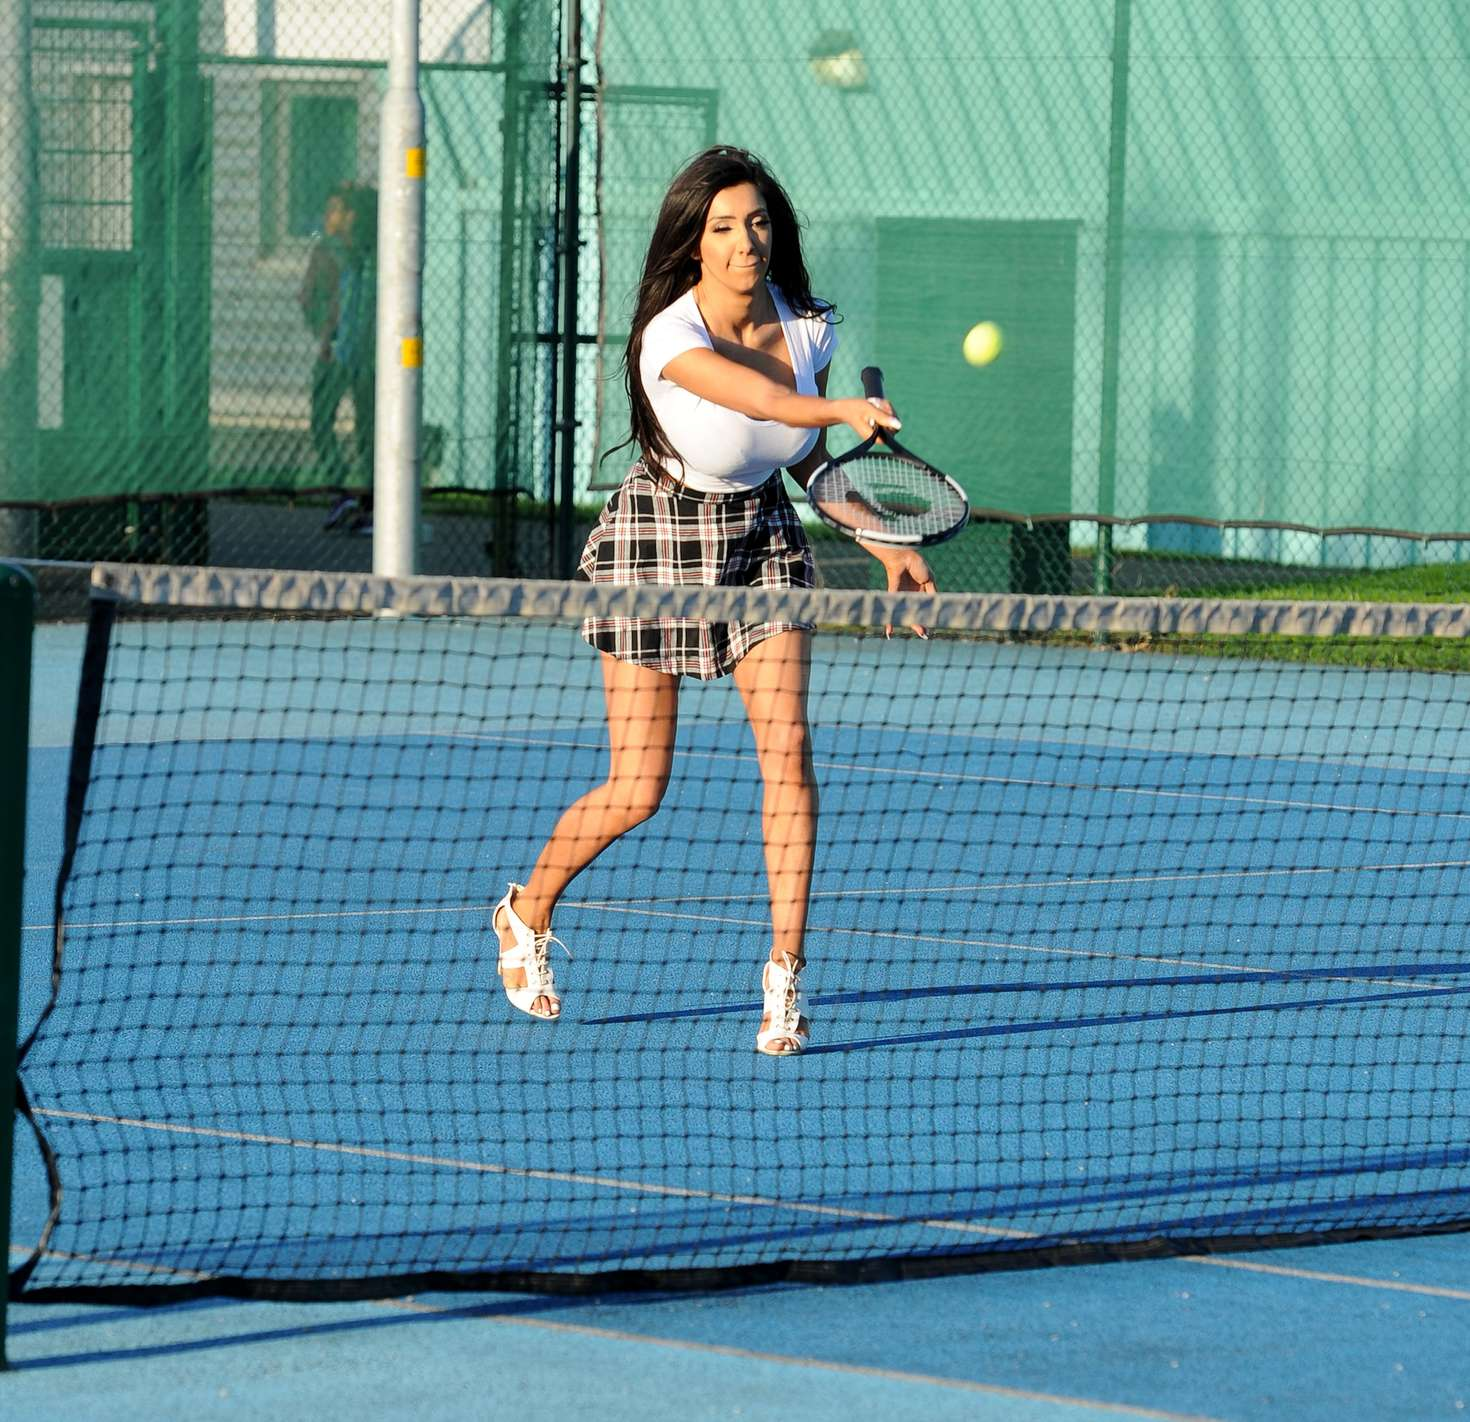 Where to play tennis in manchester